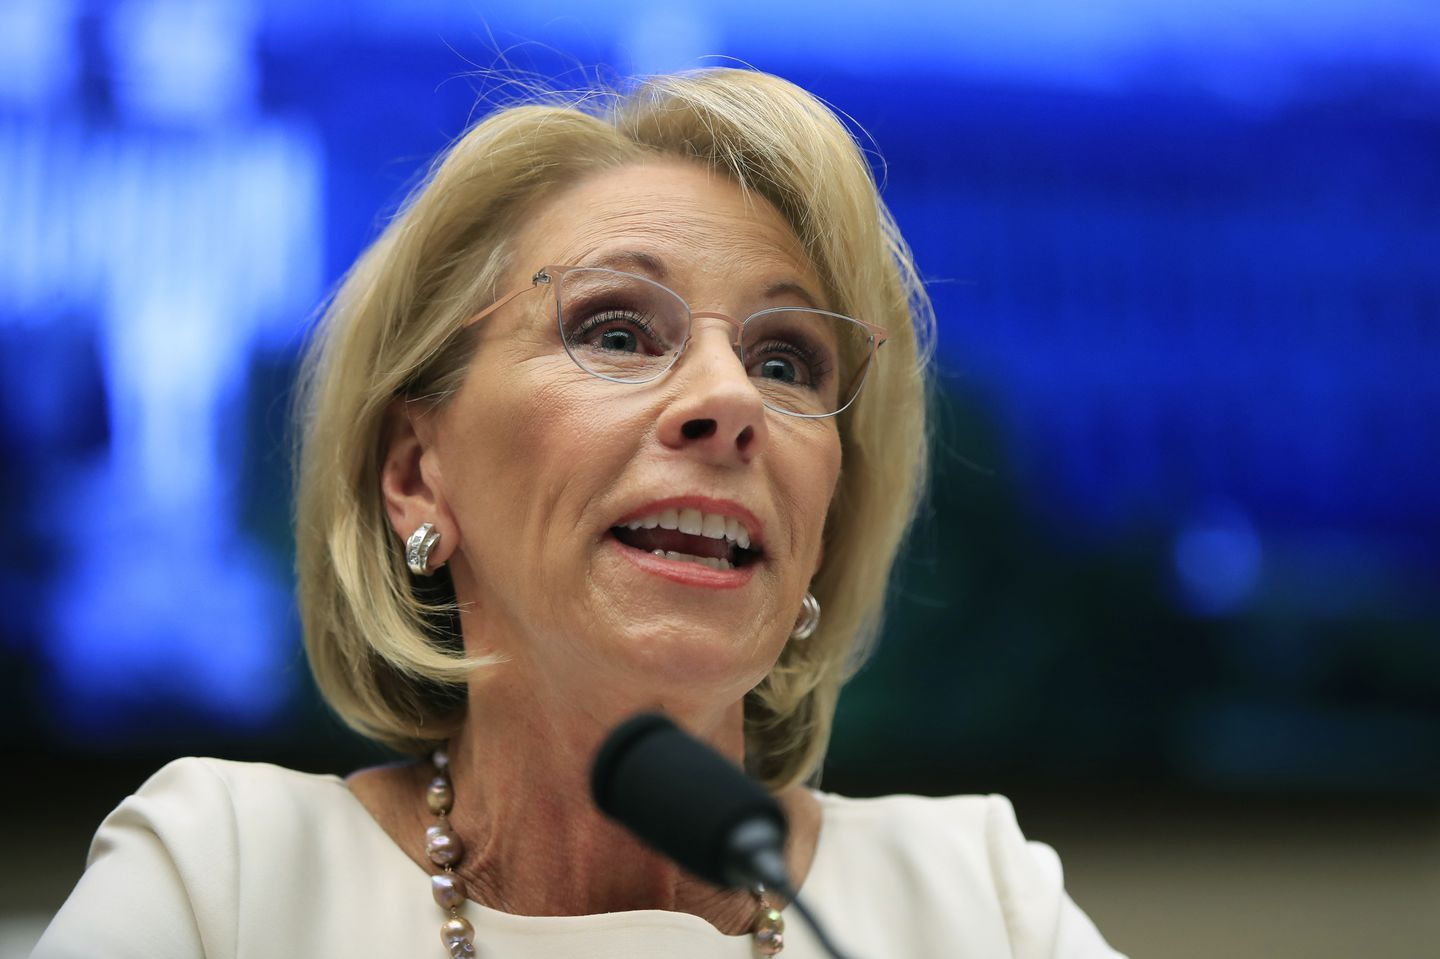 Education Department says it will fund Middle East studies program after all - The Washington Post #middleeast